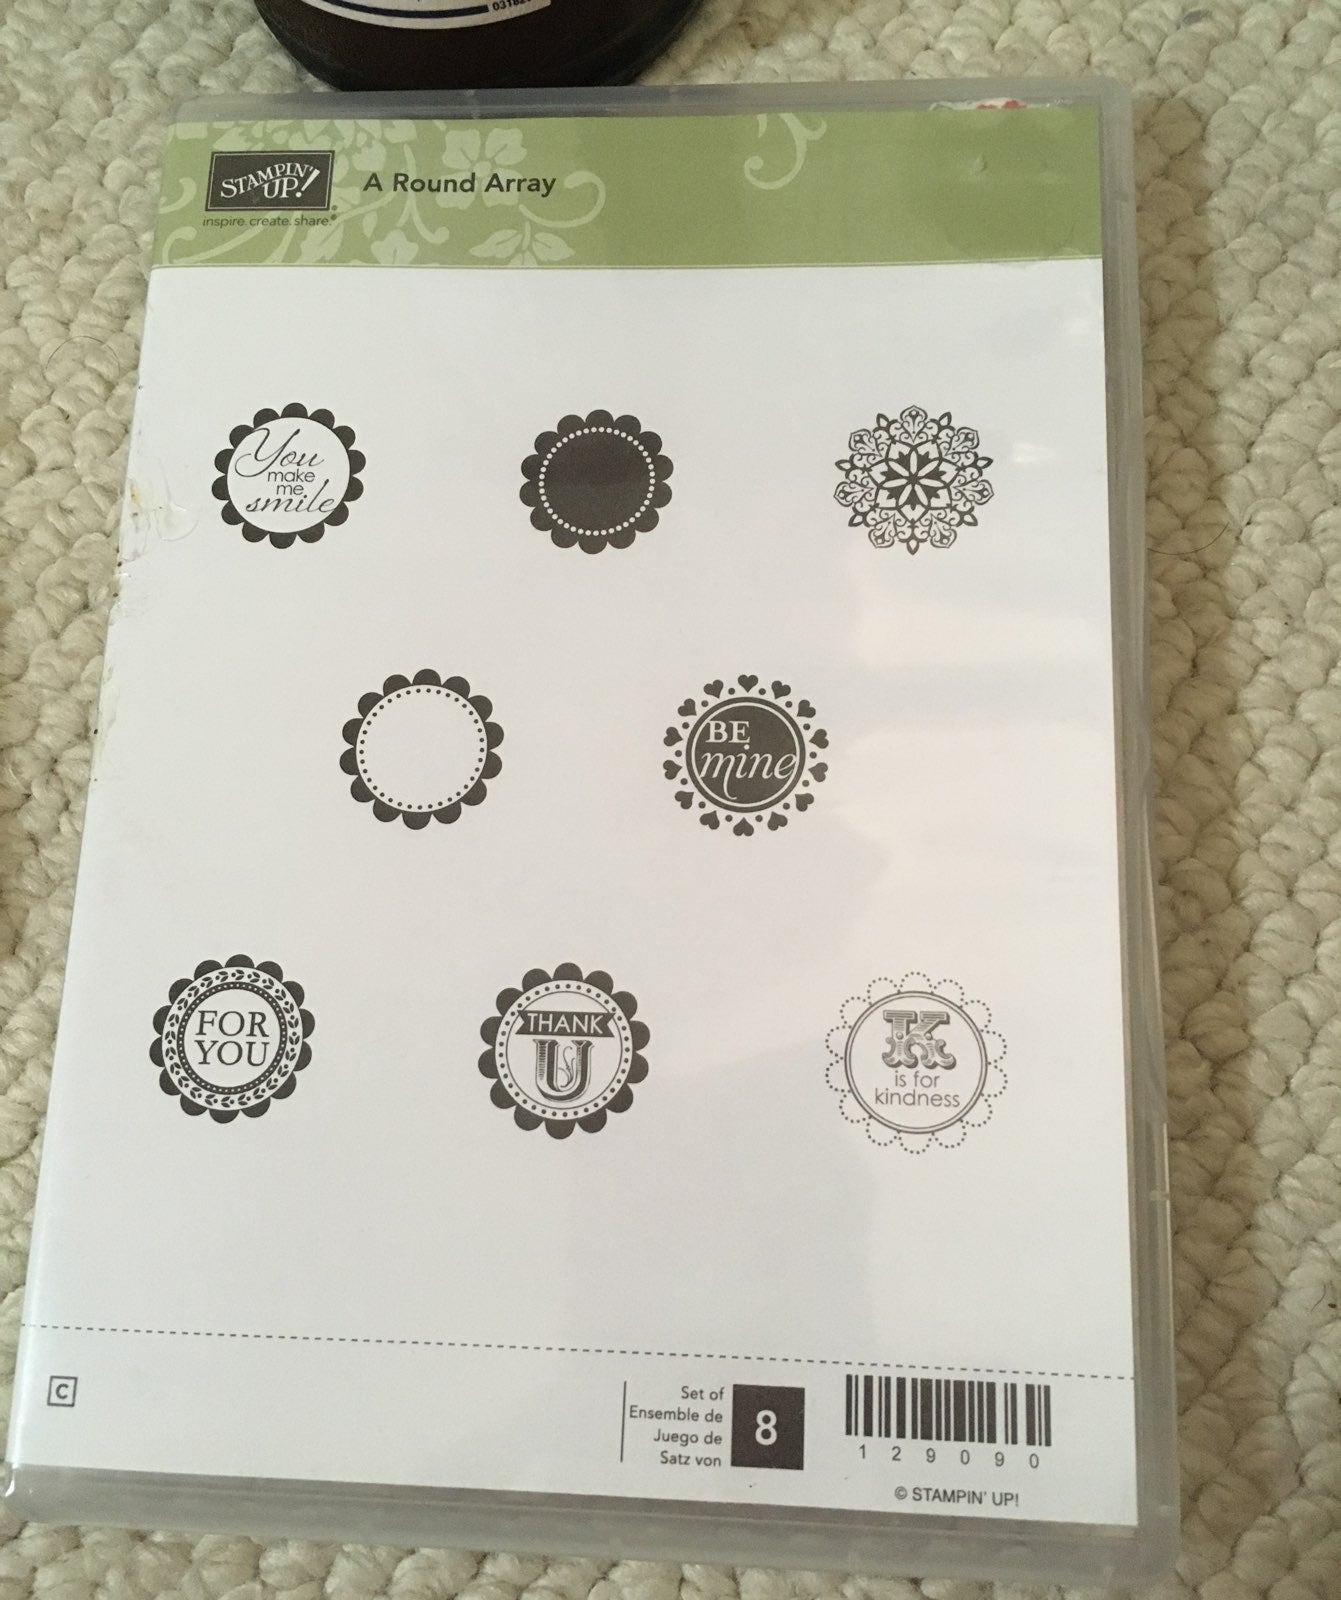 Stampin Up A Round Array